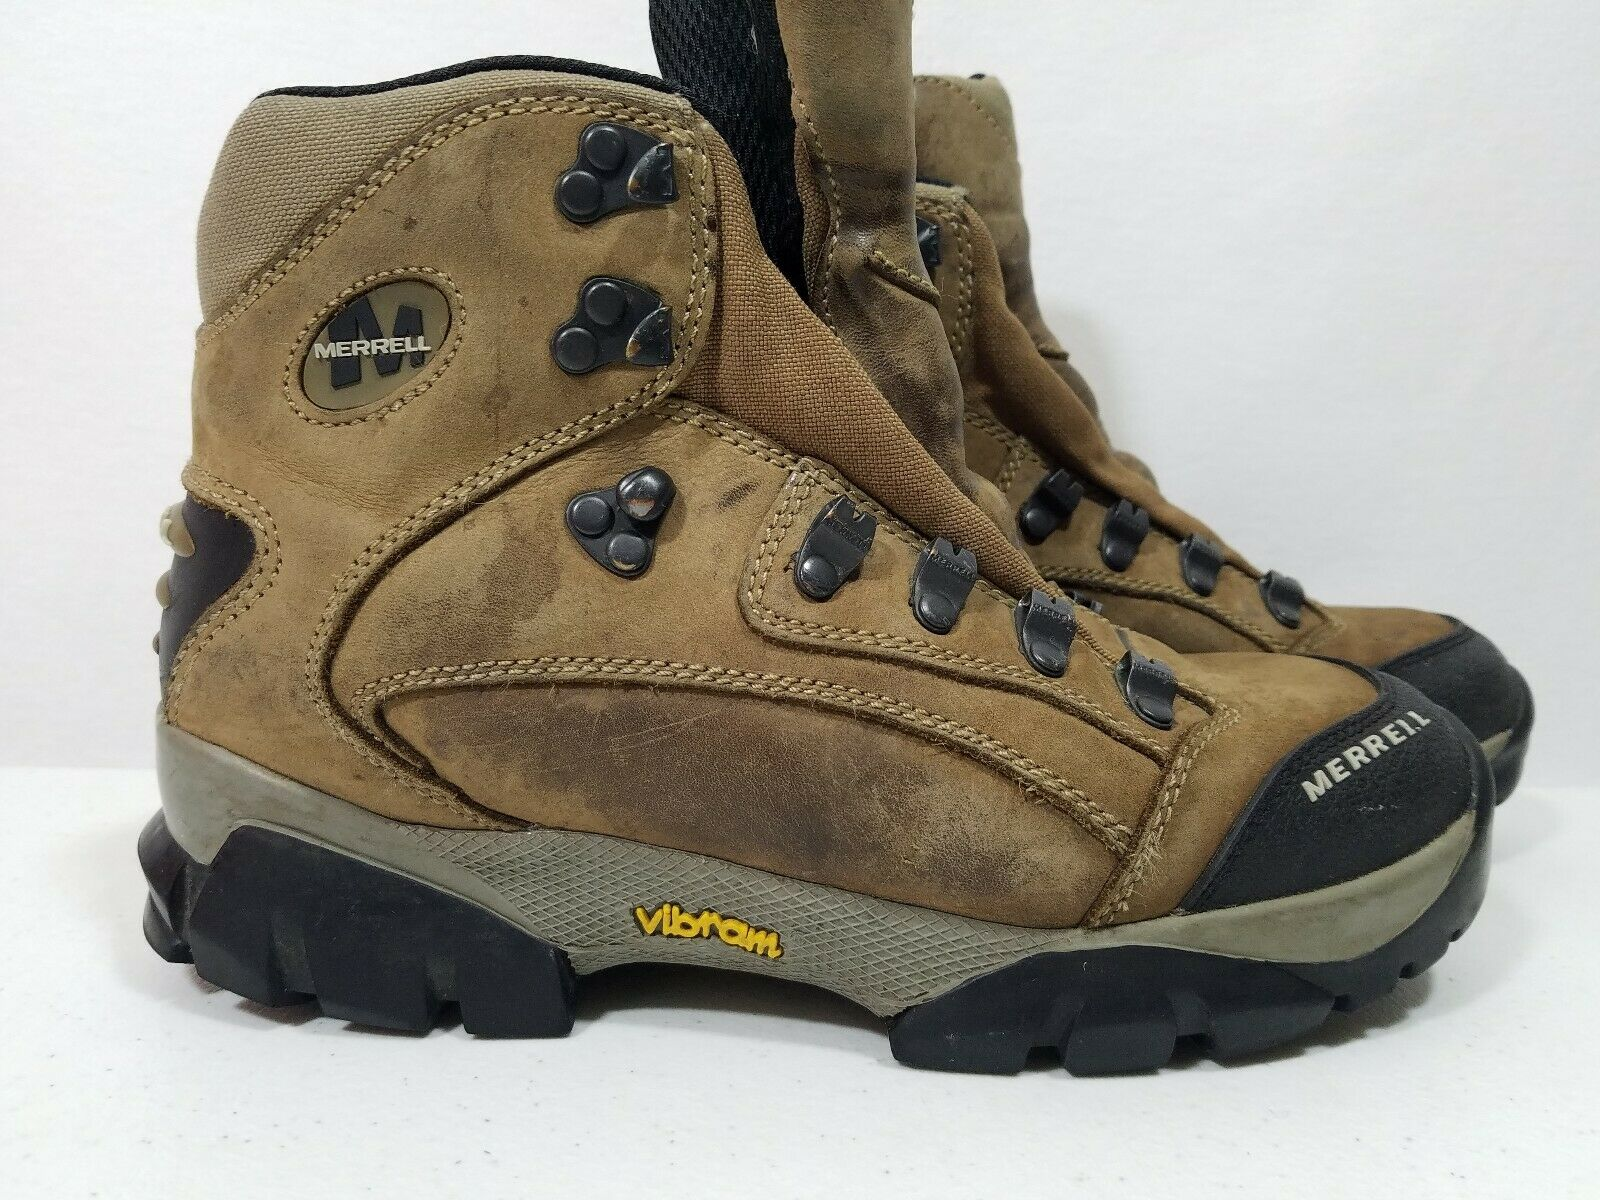 Merrell 50754 Womens Wind River Stone Hiking Trail Boots Size 7.5